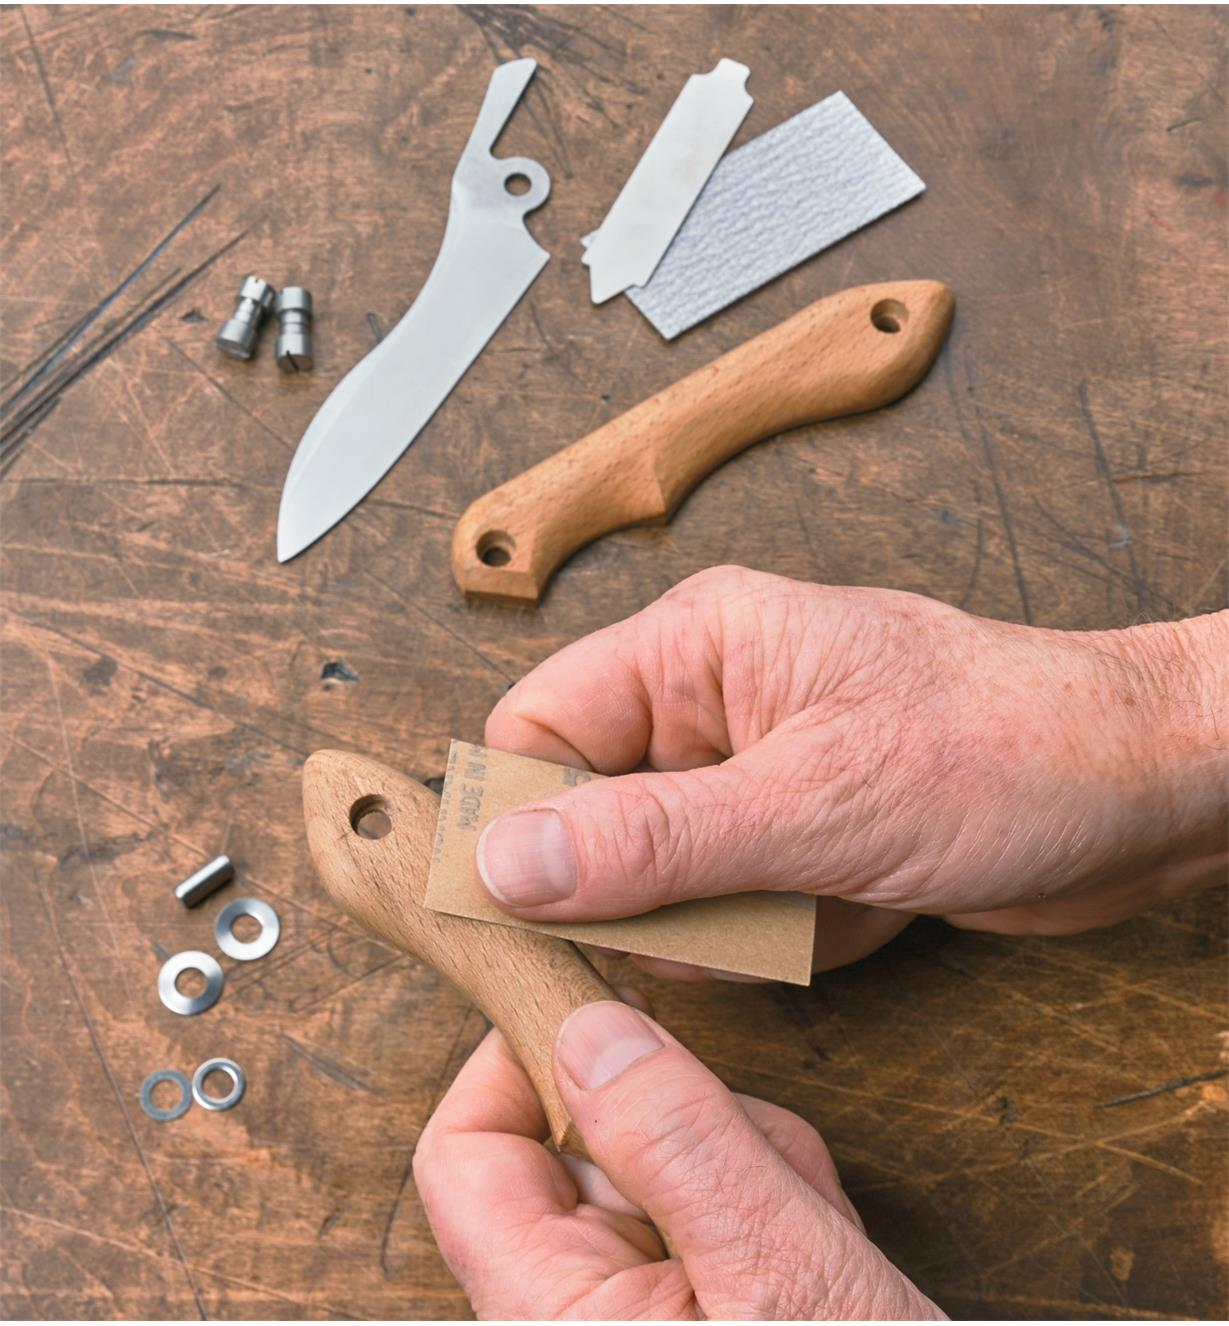 Sanding the knife handle after carving